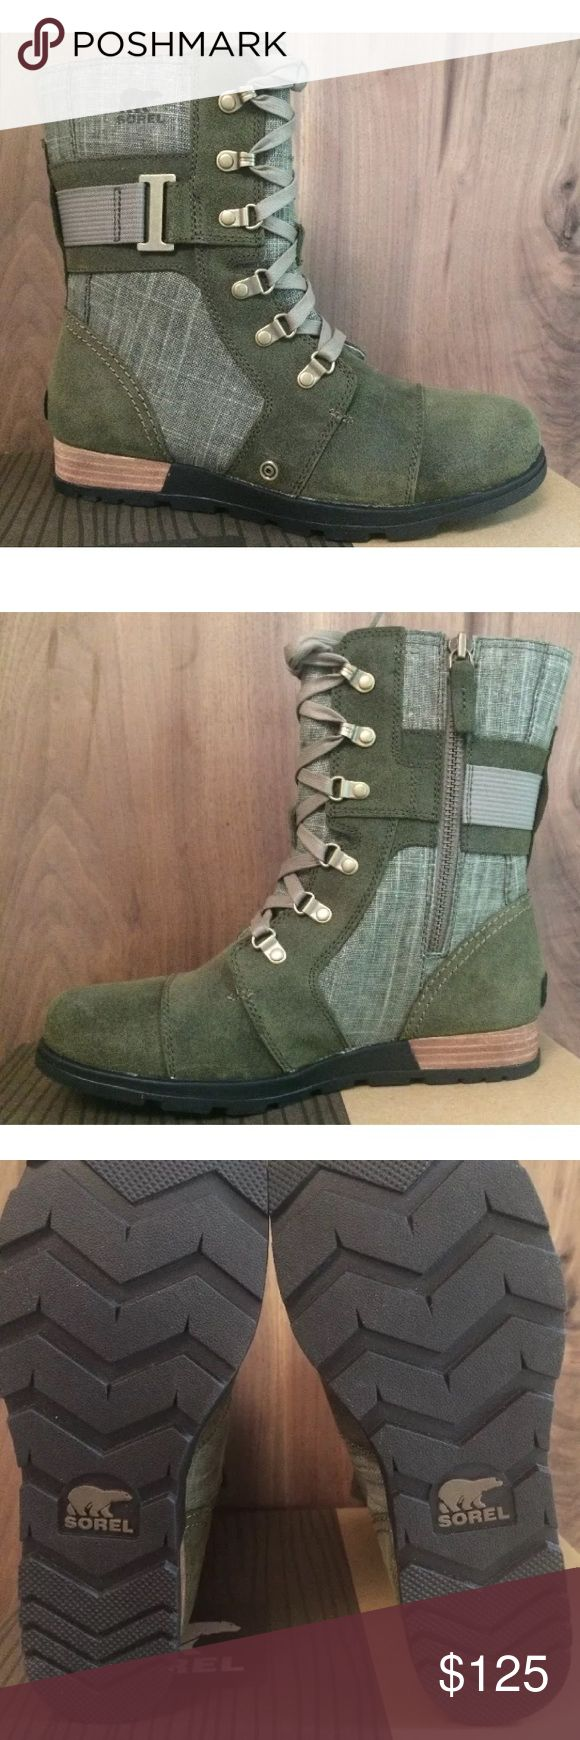 Sorel Major Carly Nori Pebble Boots sz 9 Sorel New in Box Major Carly Nori Pebble Women's Military Boots size 9. Retail for $160. Please look at reviews for the sizing on these boots to make sure you get the correct size. They have lace up details and an inside zip to make them easy to get on. Super cute boots! ♦️No Trades♦️ Sorel Shoes Lace Up Boots